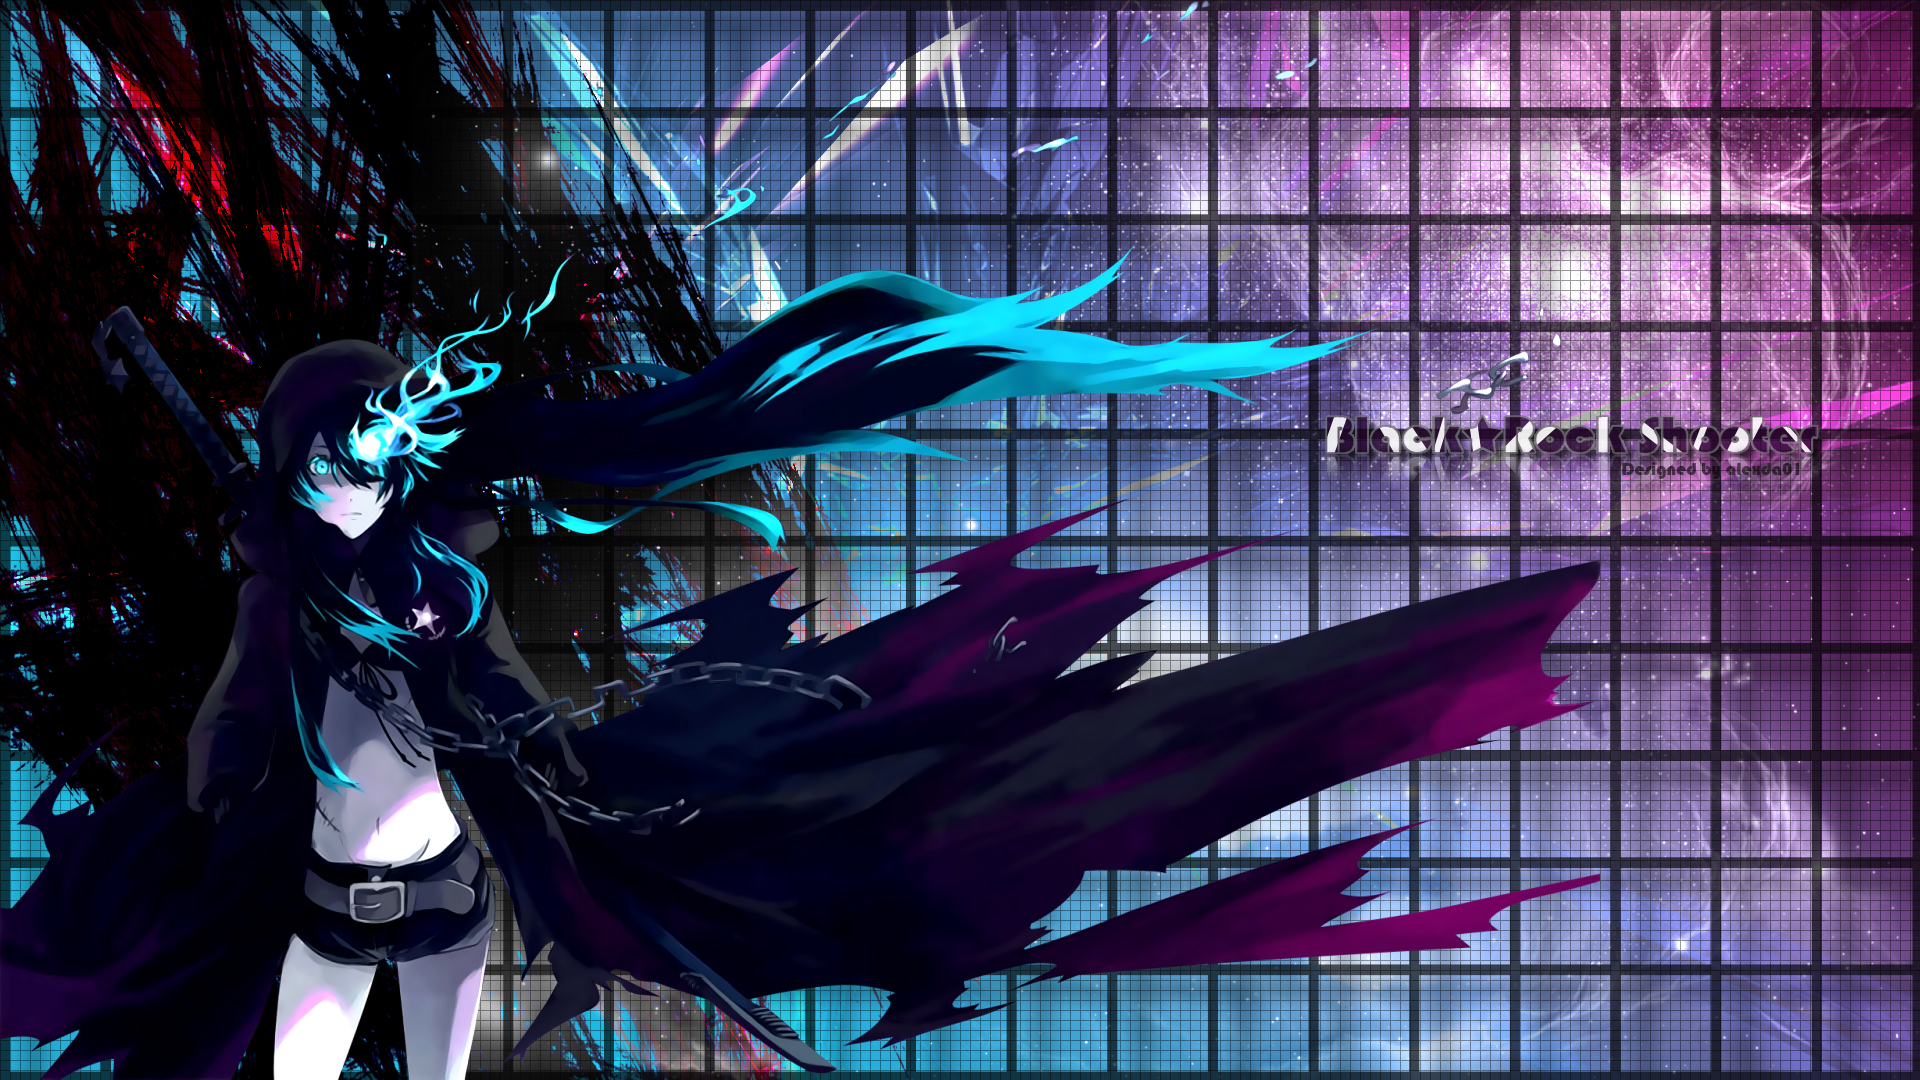 1148 Black Rock Shooter HD Wallpapers | Backgrounds - Wallpaper